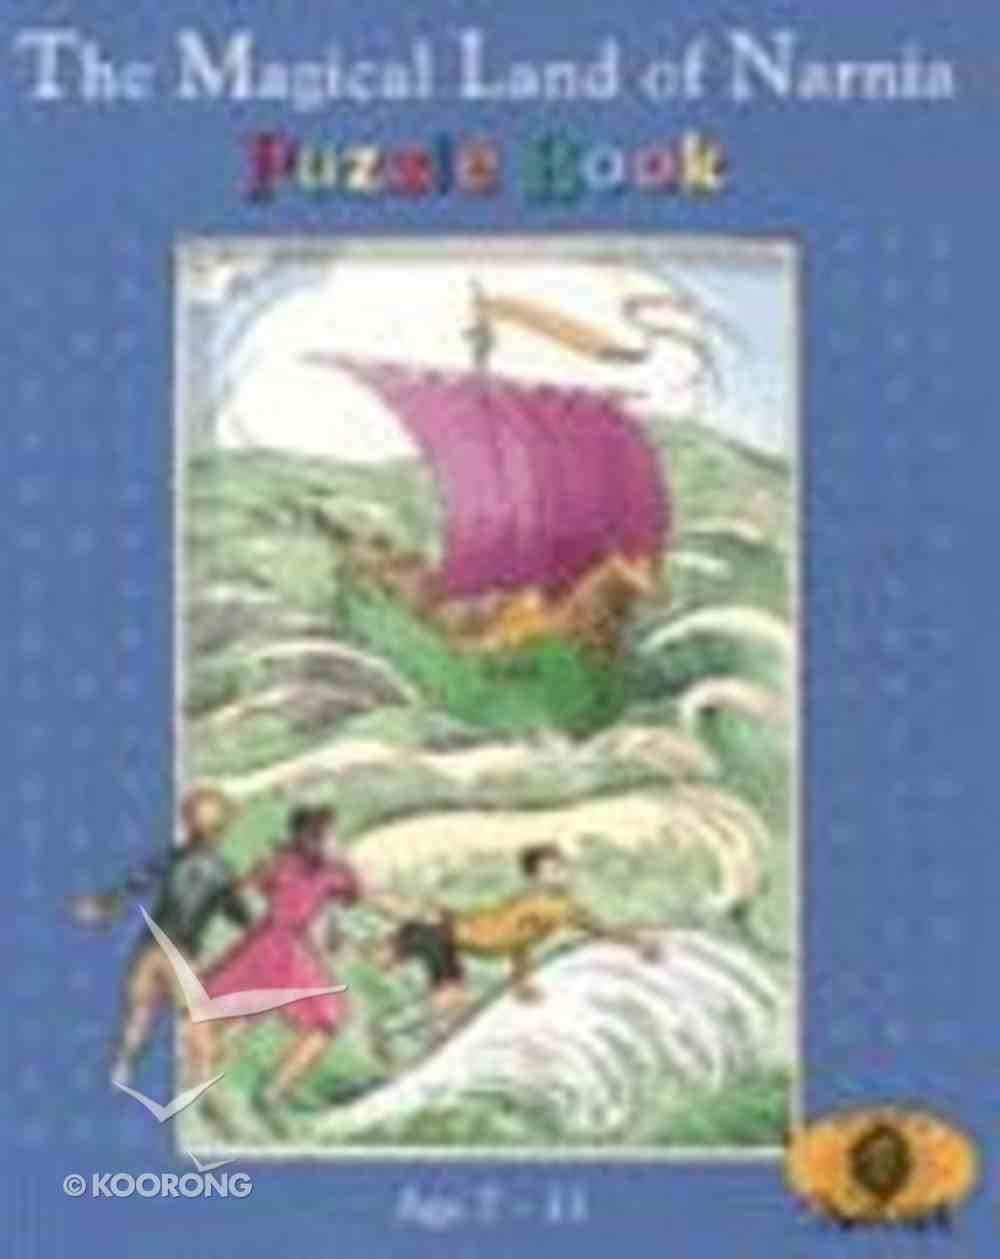 Magical Land of Narnia Puzzle Book Paperback